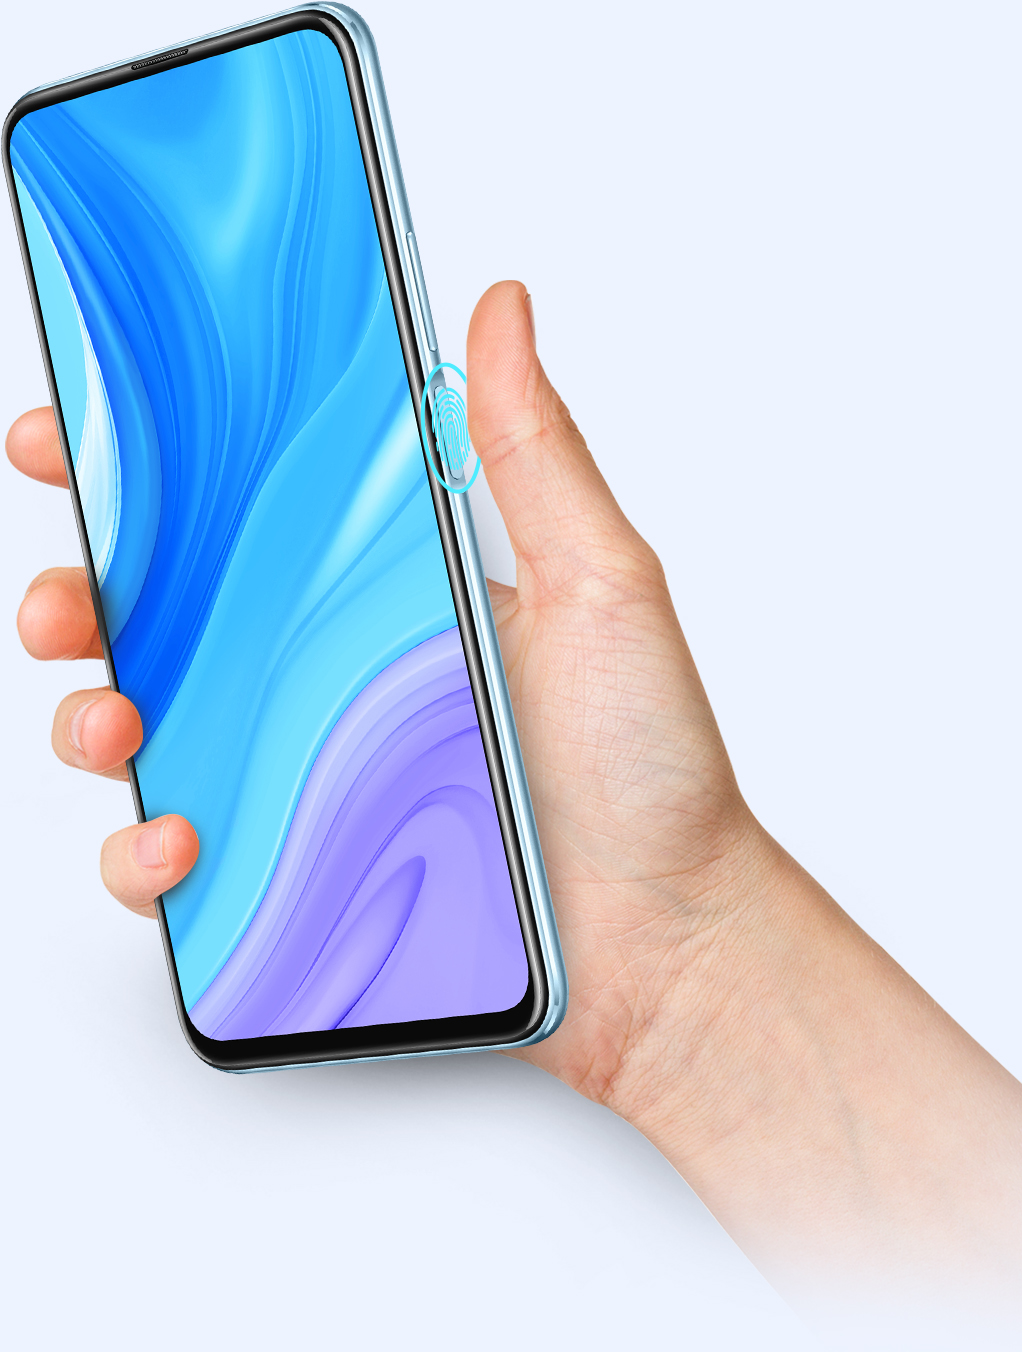 HUAWEI P smart Pro fingerprint